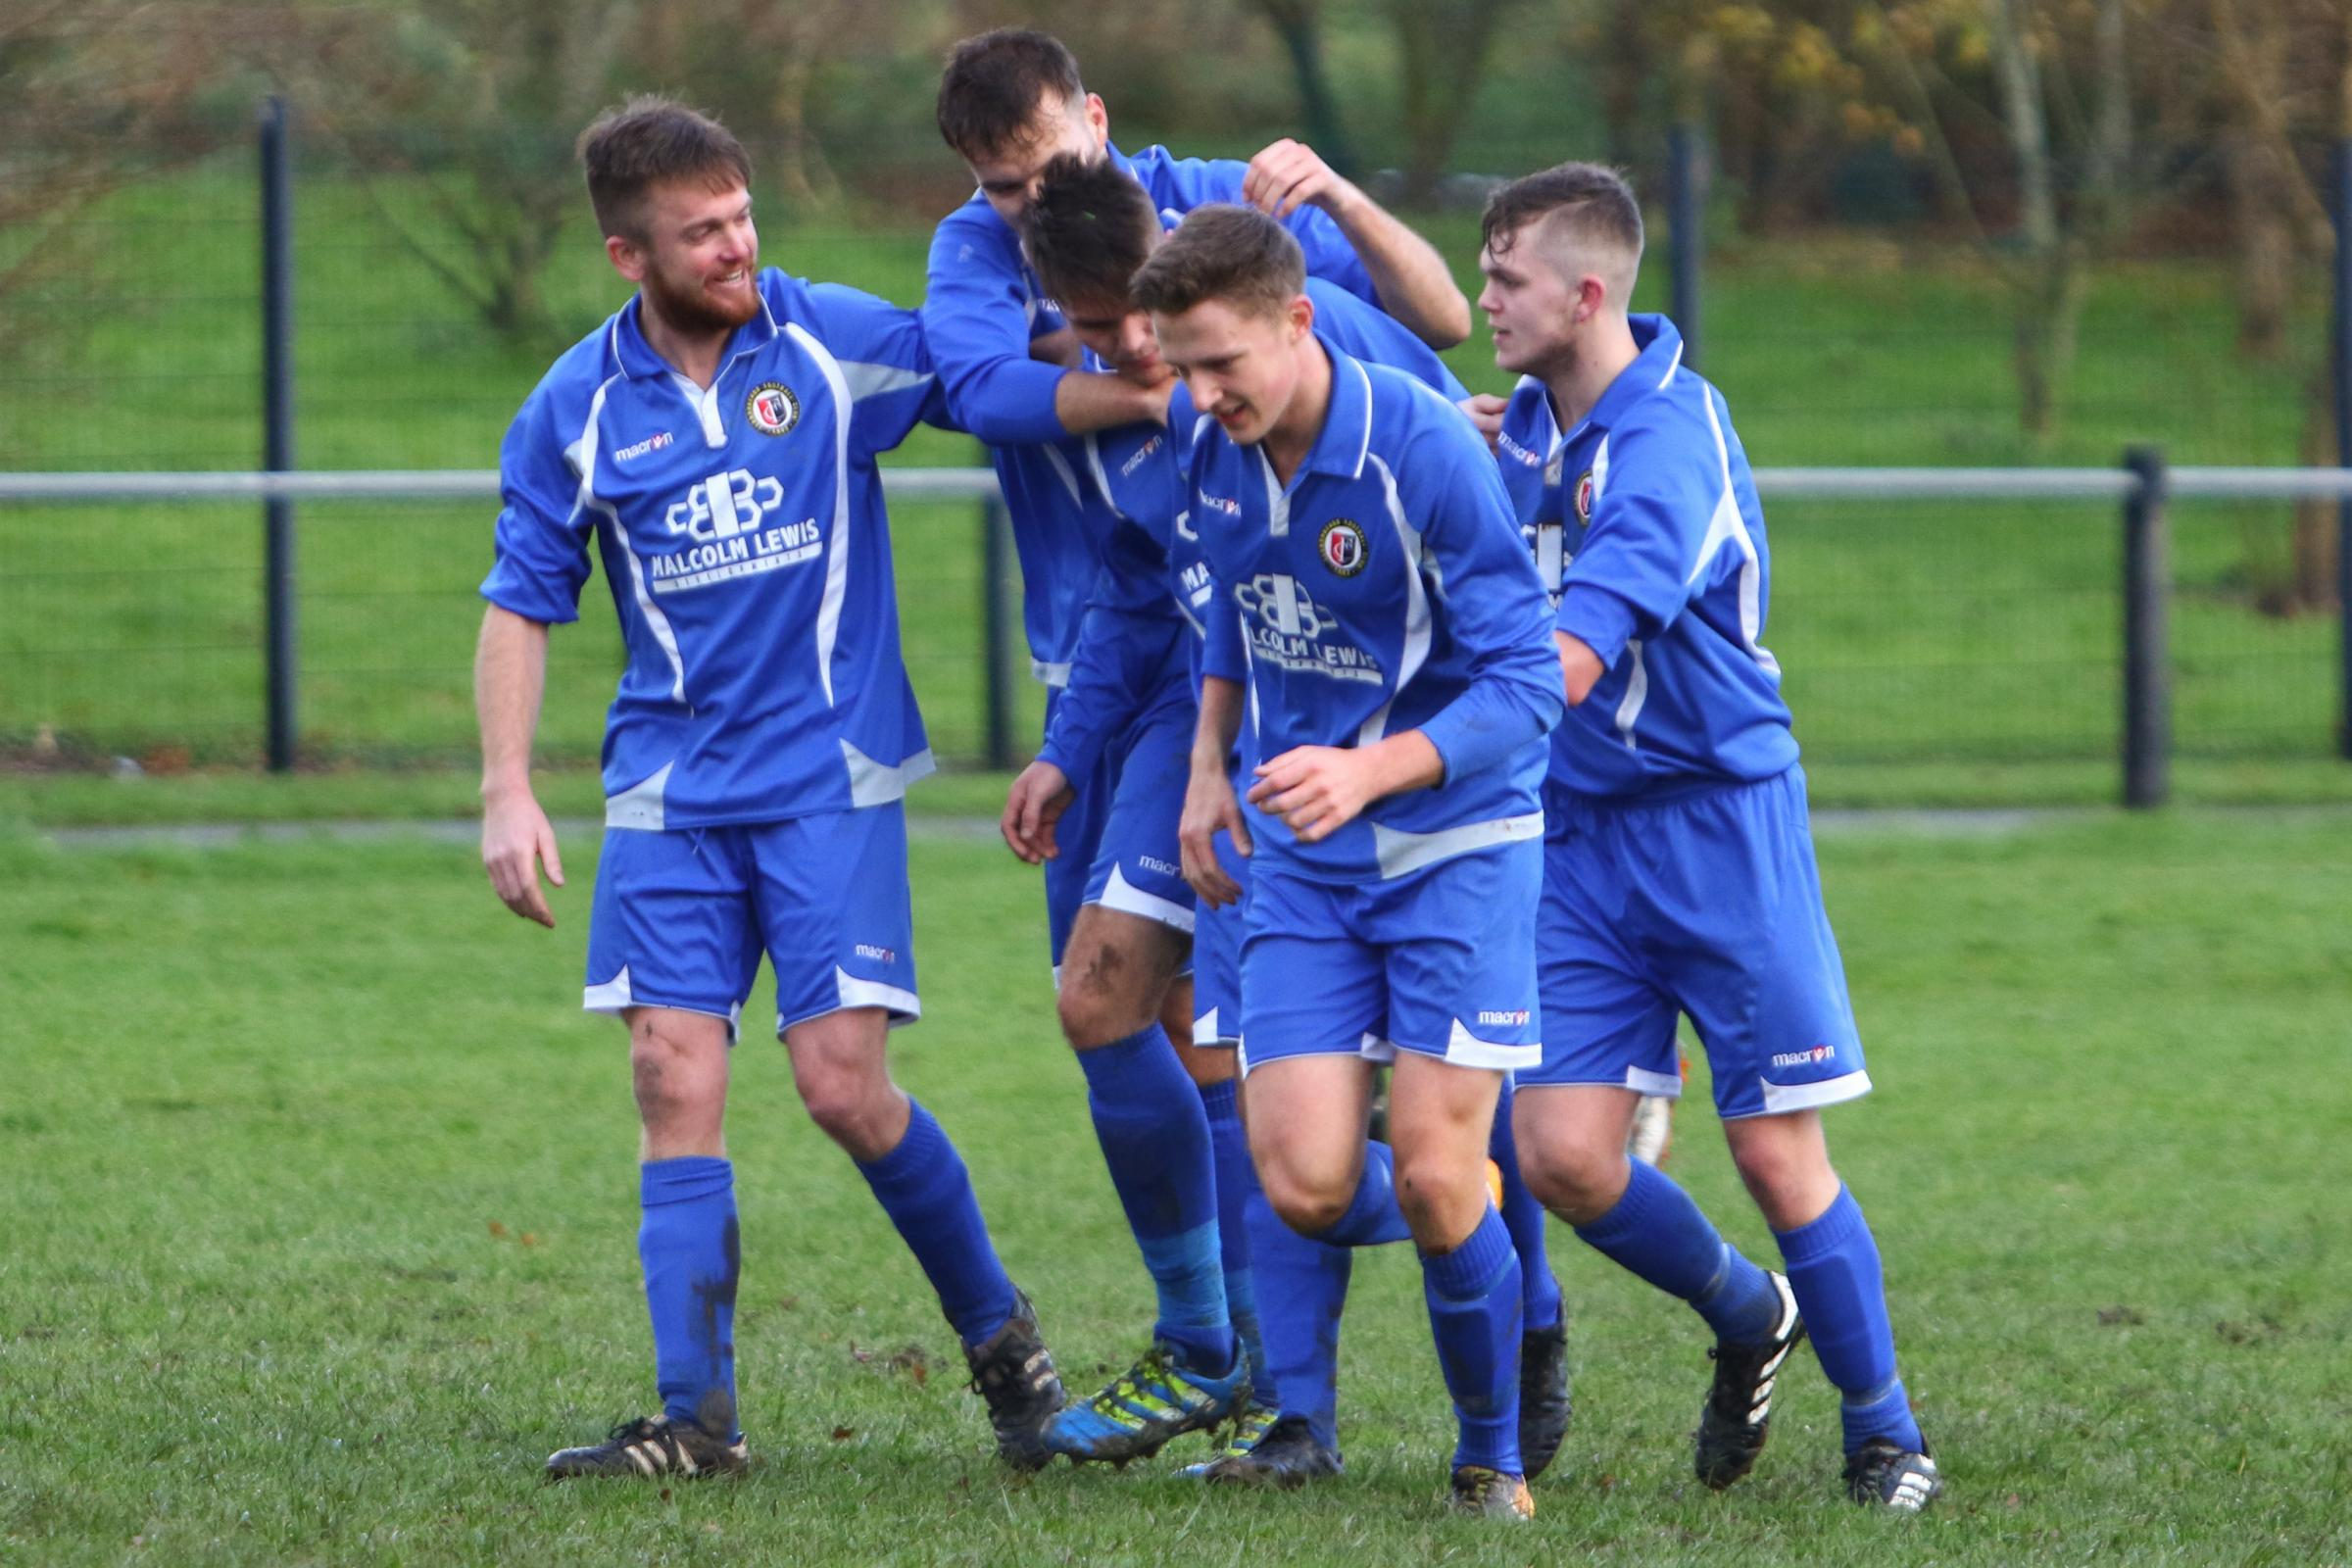 Goal. Iwan Matthews is congratulated after scoring to make it 1-1 during the JD Welsh Cup fixture between Llanrhaeadr and Cefn Druids at Recreation Field, Llanrhaeadr Ym Mochnant. Picture: Mike Sheridan (MS817-2017)